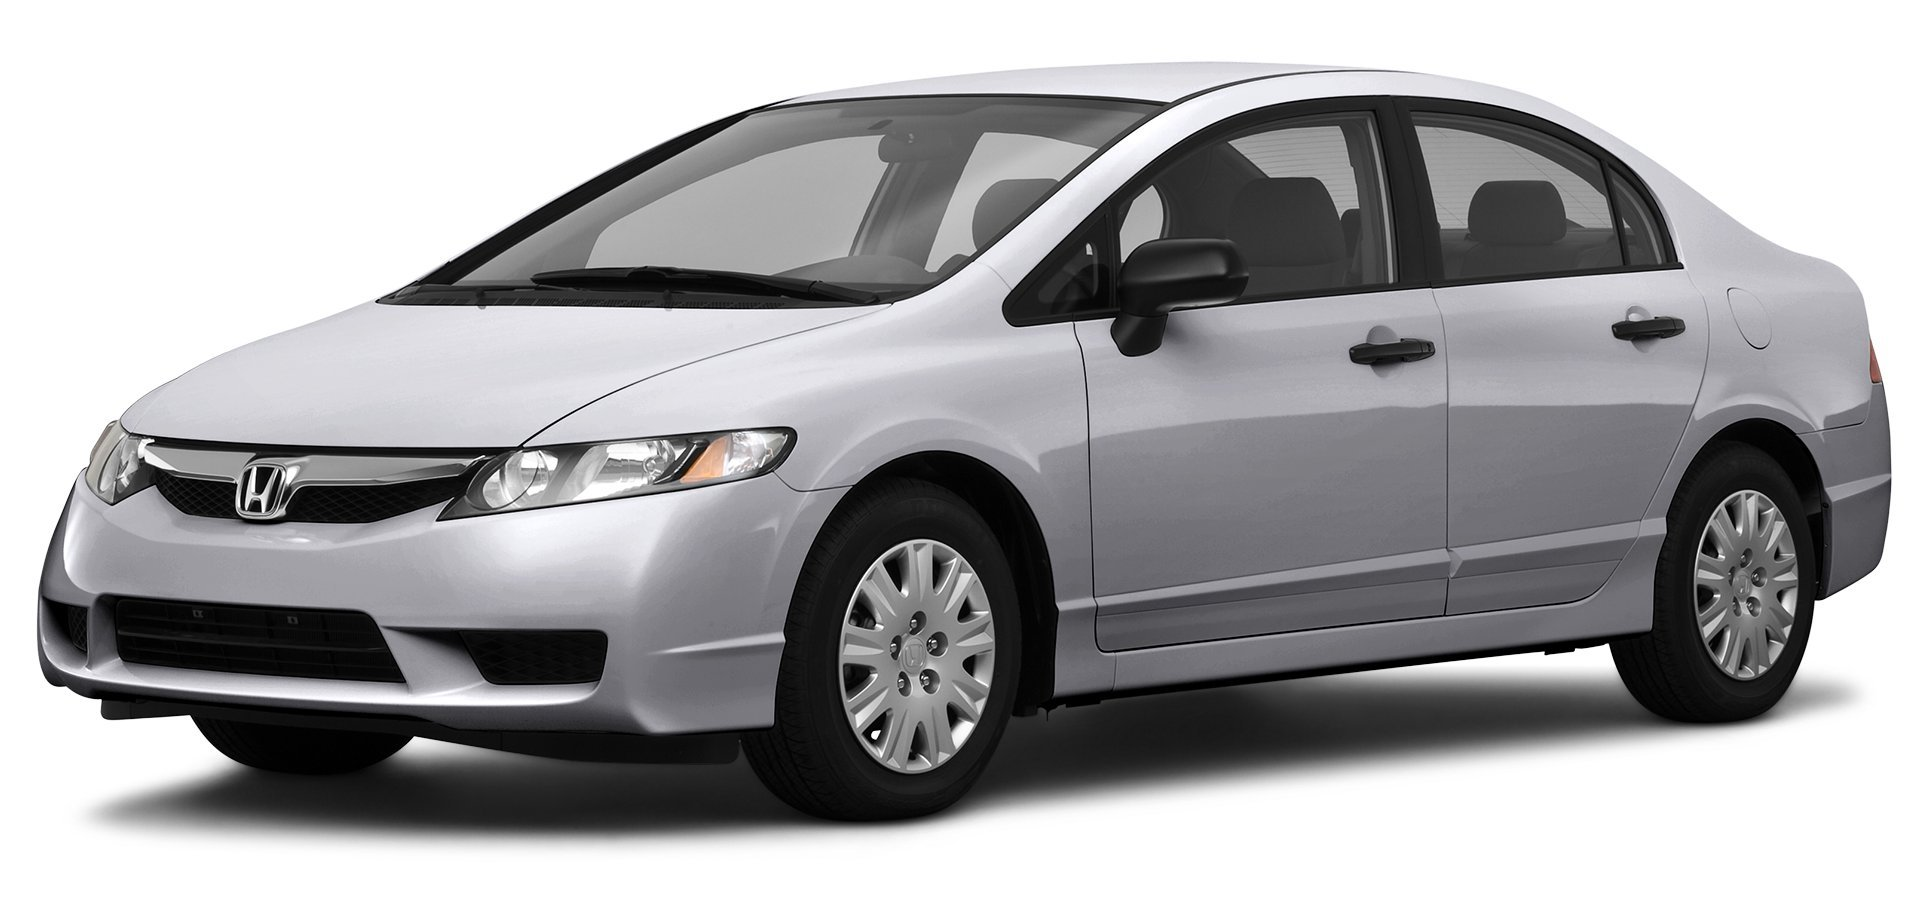 ... 2009 Honda Civic DX, 4-Door Automatic Transmission ...